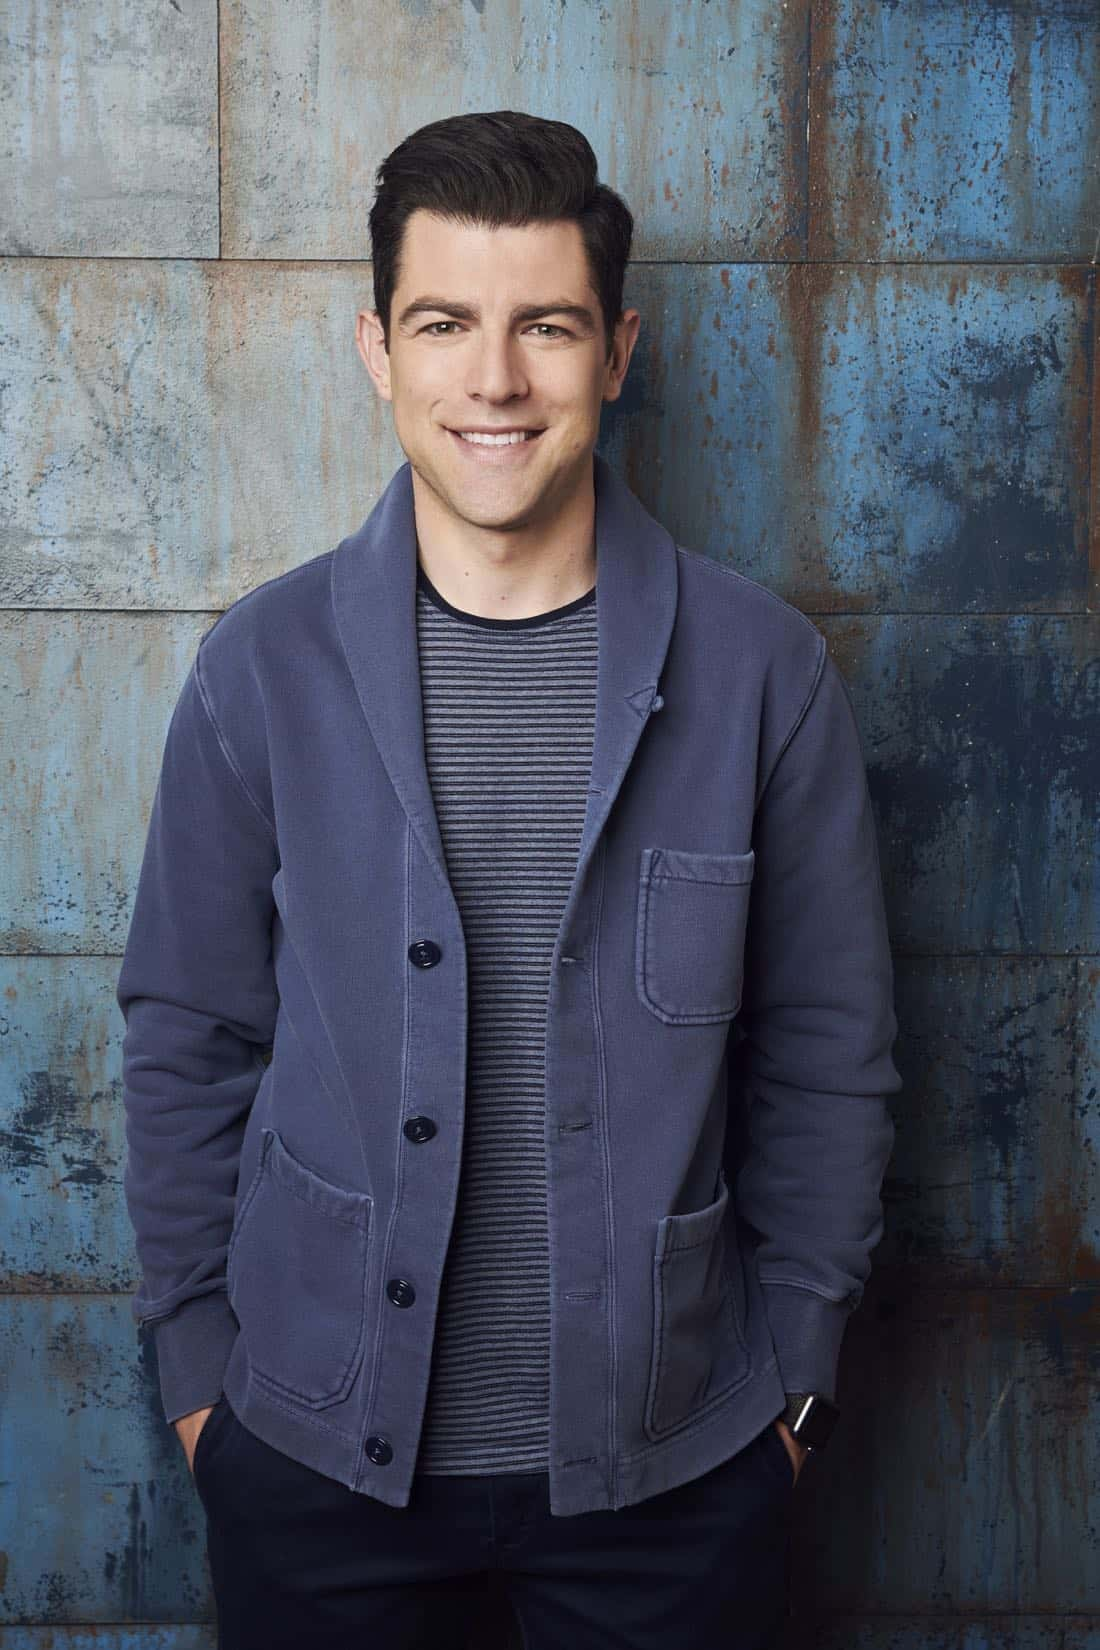 NEW GIRL: Max Greenfield returns as Schmidt in season seven of NEW GIRL coming soon to FOX. ©2017 Fox Broadcasting Co. Cr: Jeff Lipsky/FOX